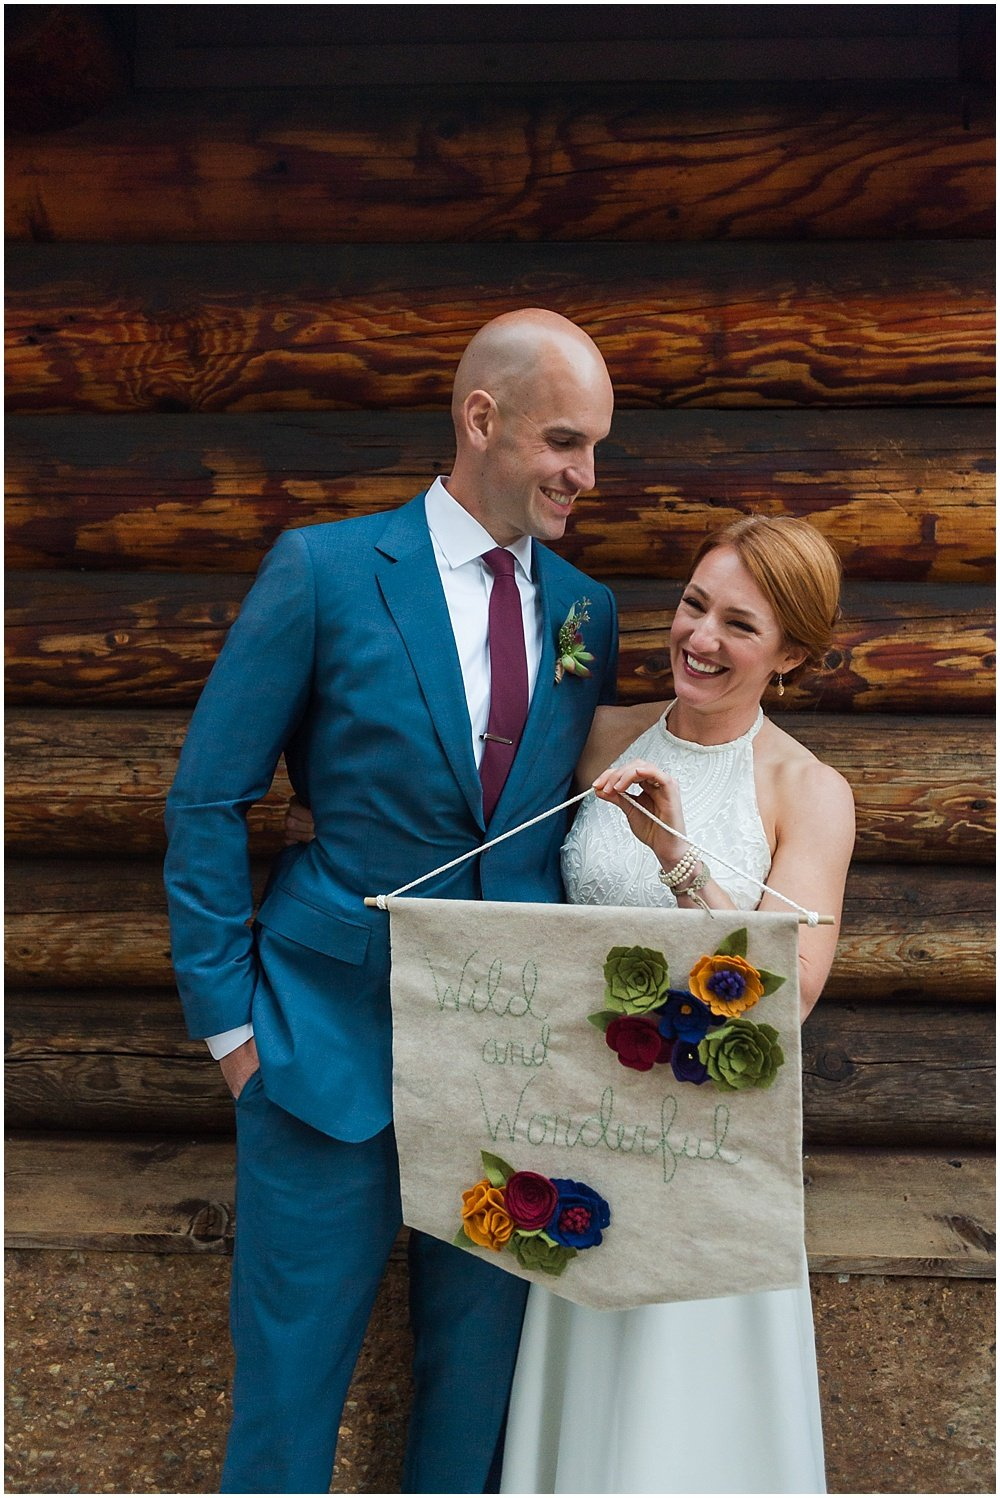 Couple smiles at gray eagle lodge wedding by chloe jackman photography